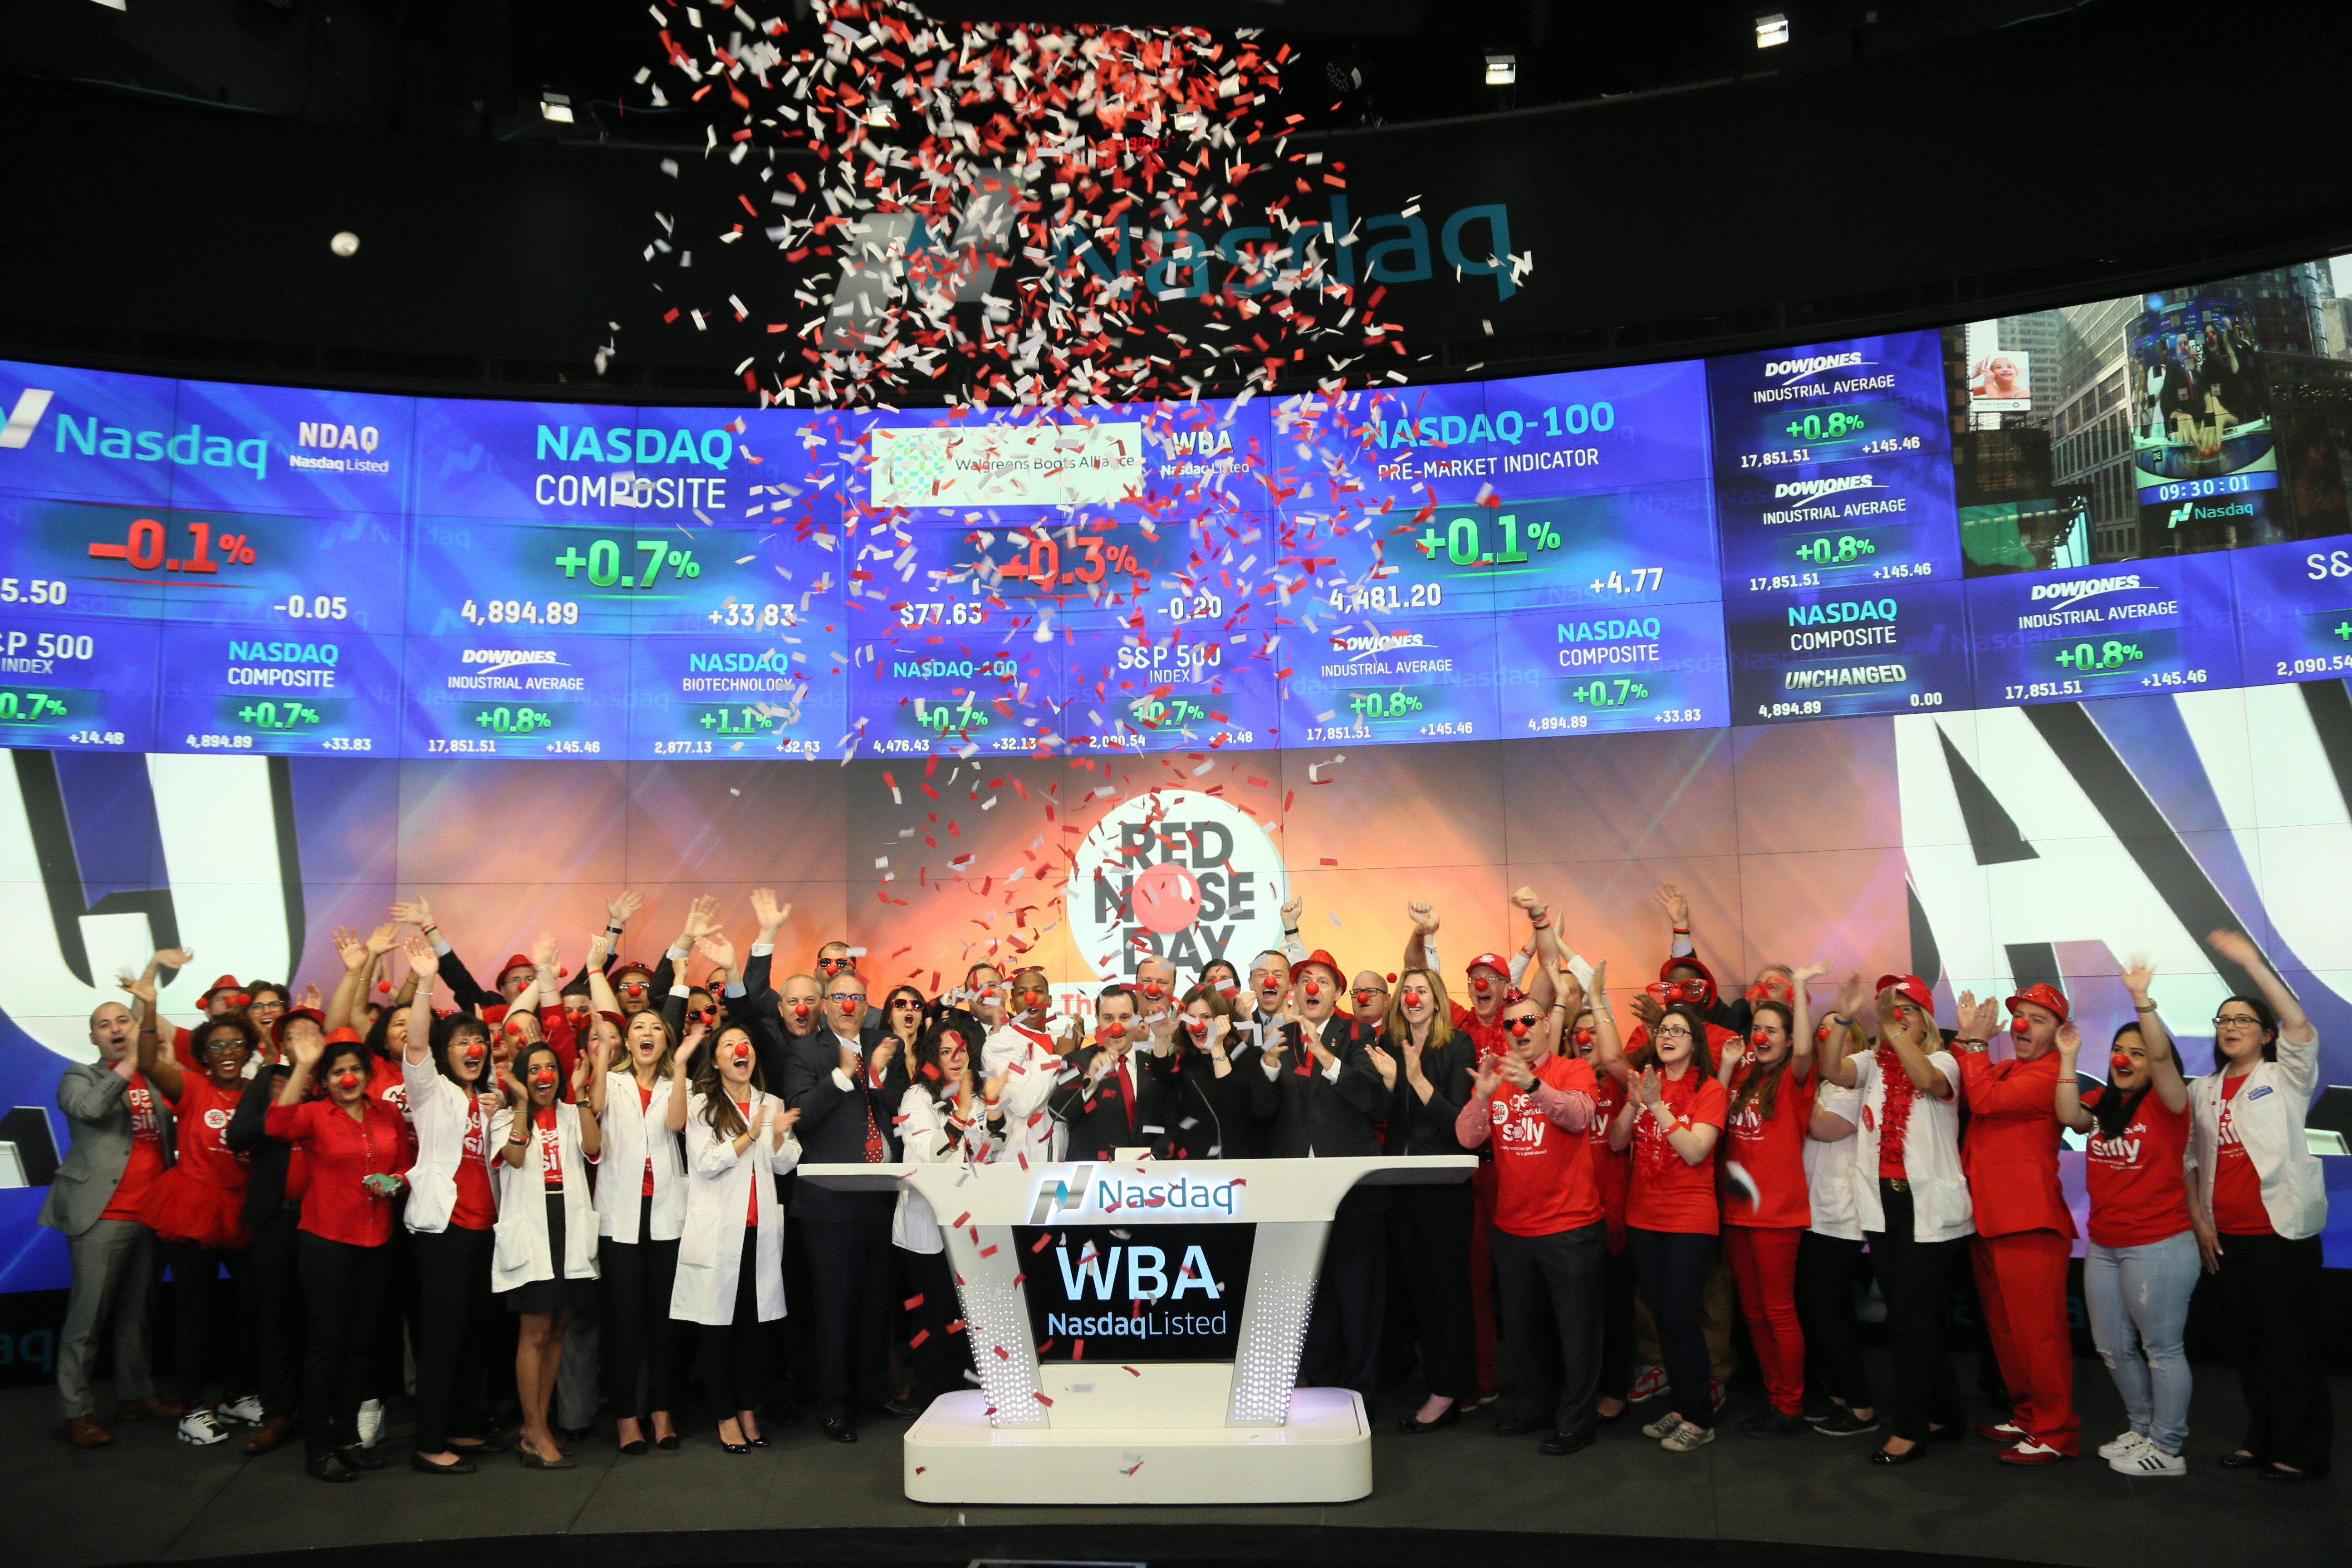 Walgreens Boots Alliance  Inc  Rings Nasdaq Opening Bell in Celebration of  Red Nose Day   Business Wire. Walgreens Boots Alliance  Inc  Rings Nasdaq Opening Bell in